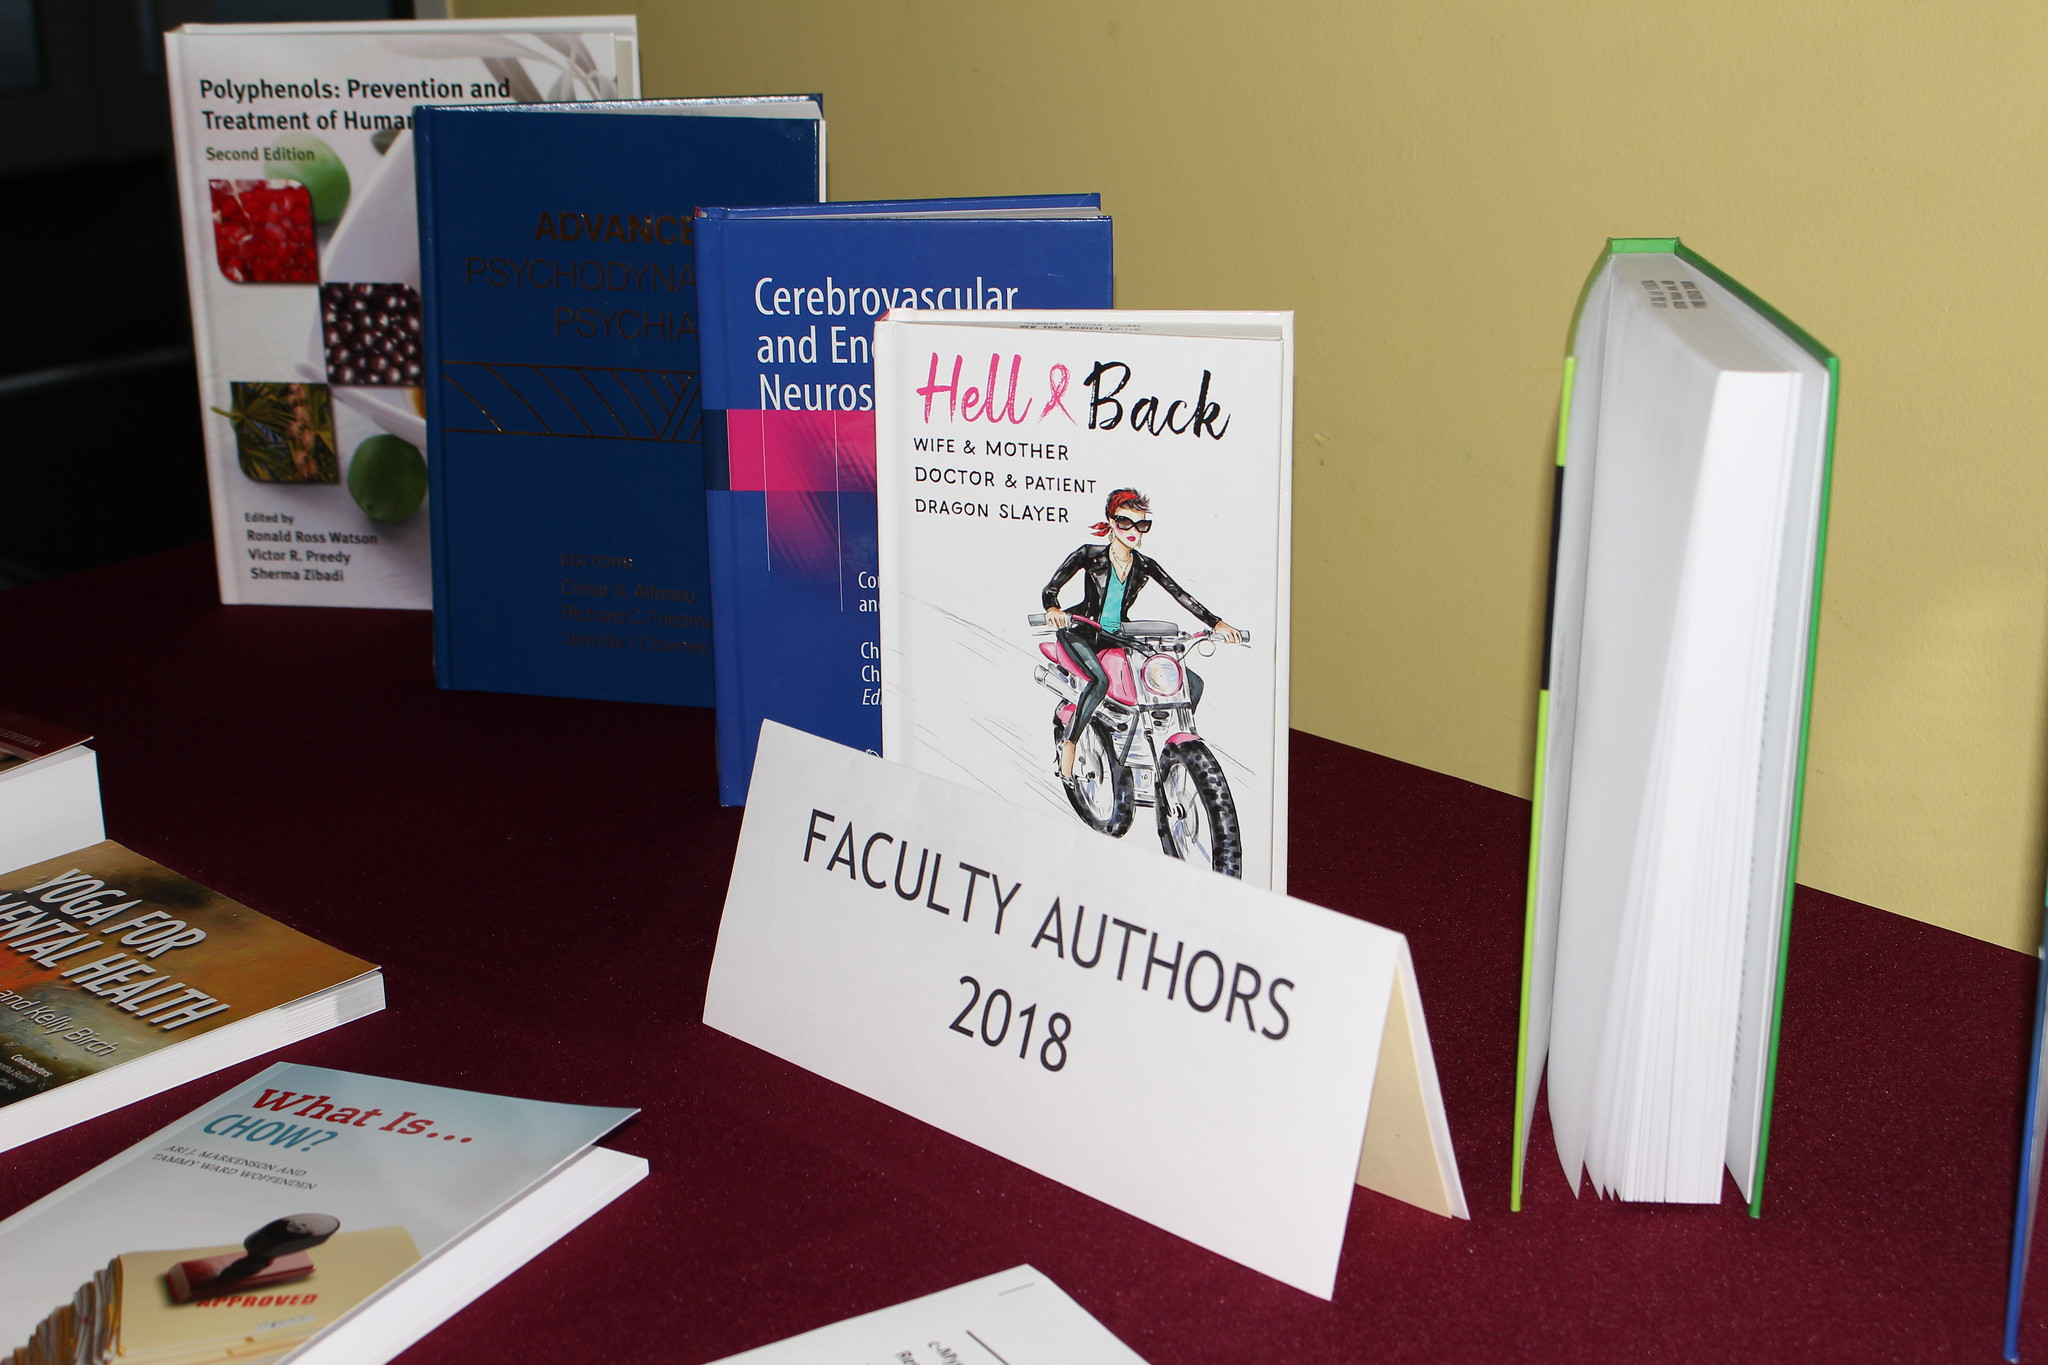 Faculty Bibliography 2019